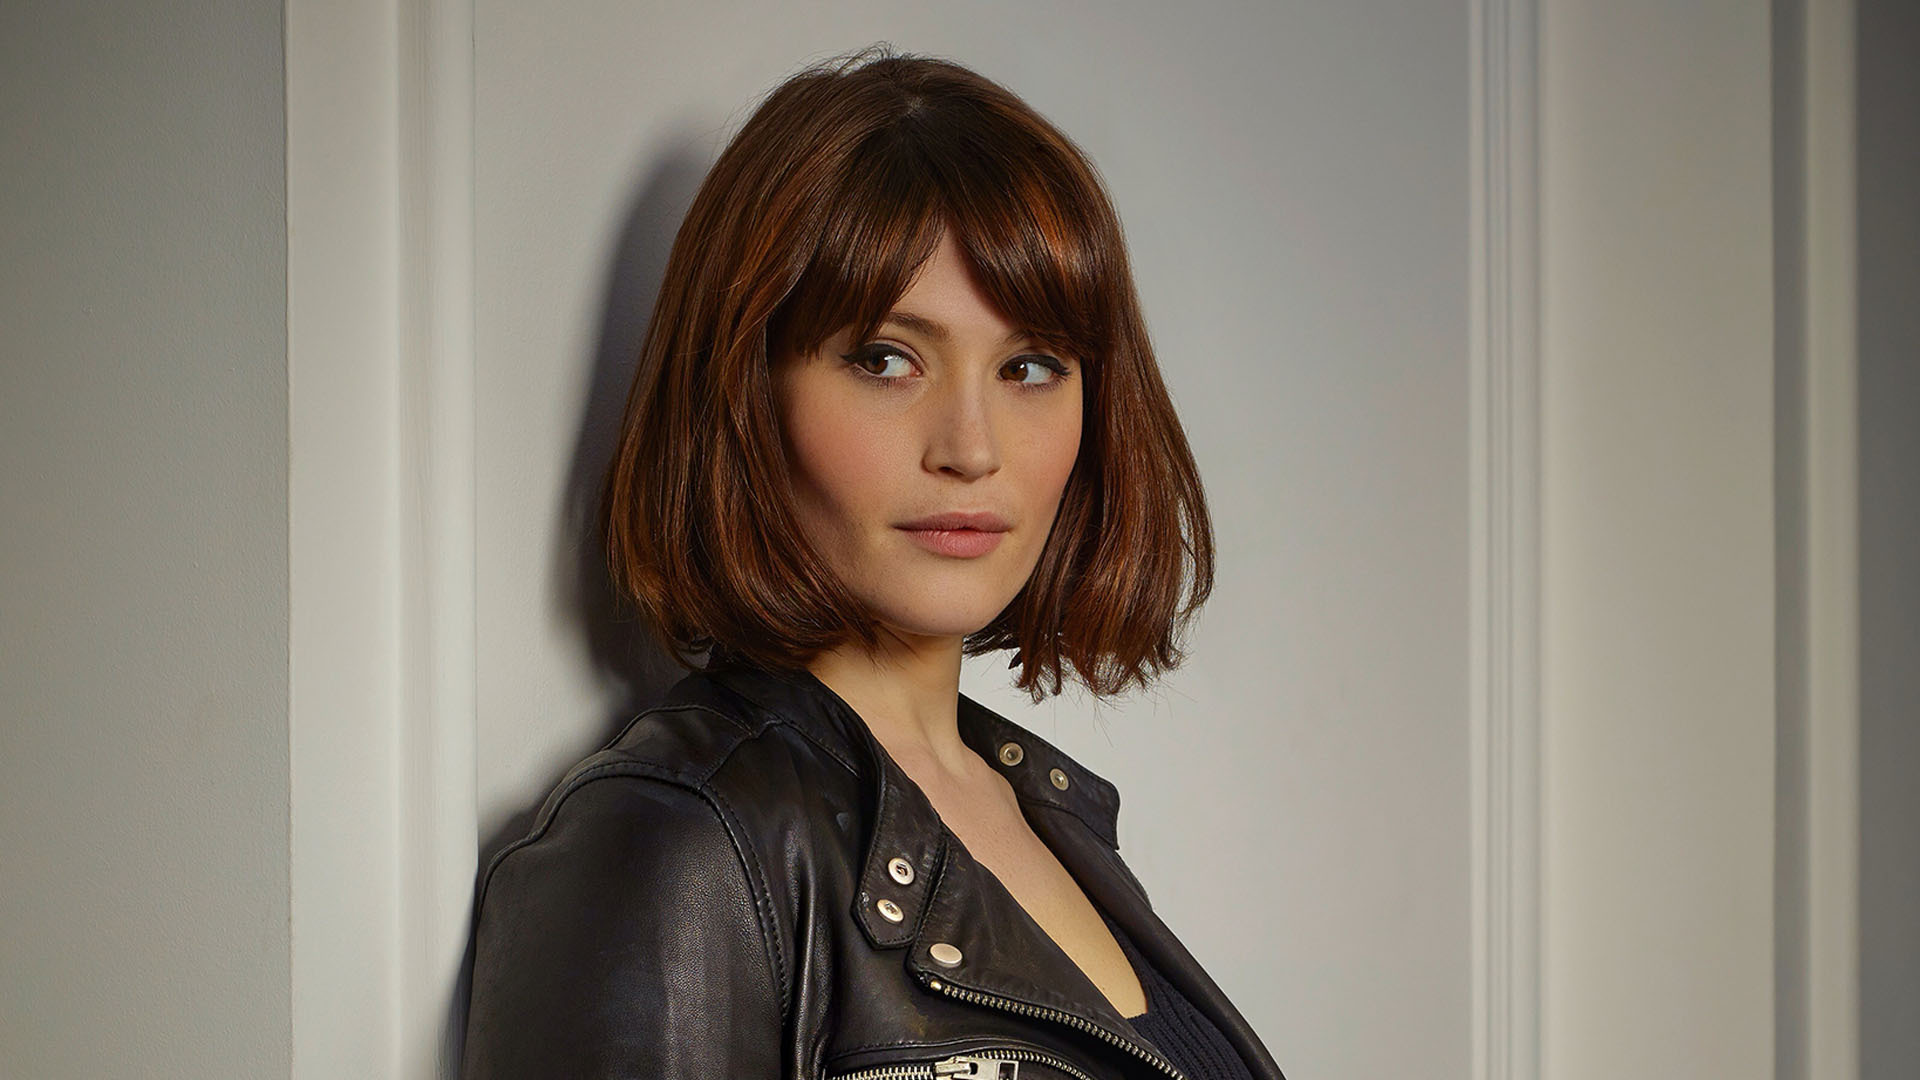 gemma arterton widescreen wallpaper - photo #19